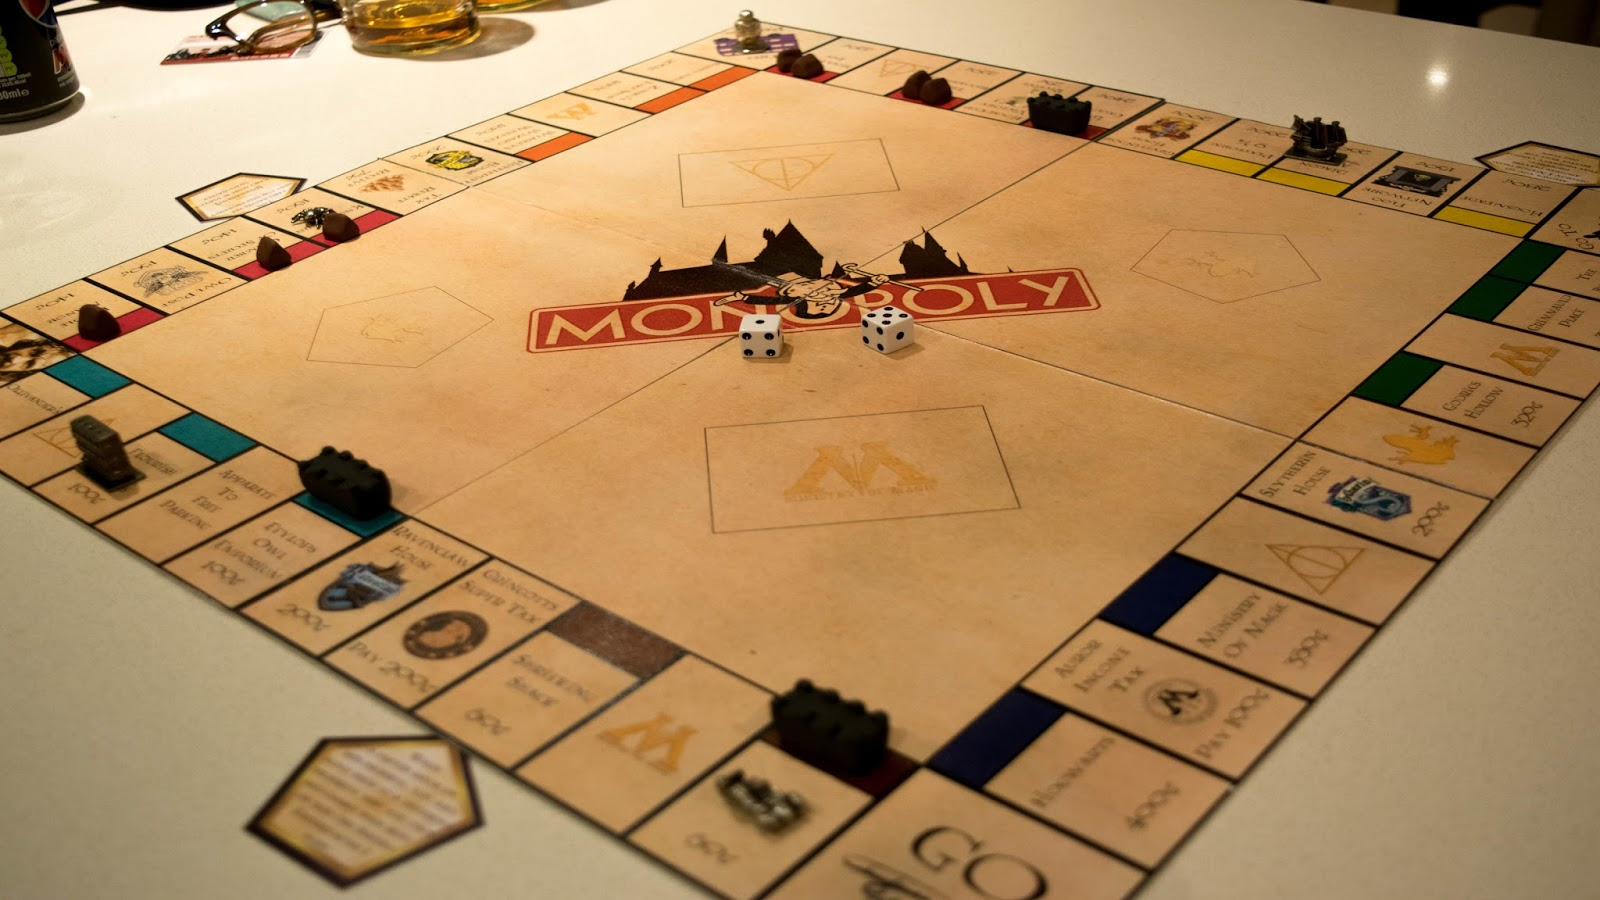 Diy harry potter monopoly charlie lou btw im releasing my designs for free so if youre interested in making this exact board you can download the cards and board here solutioingenieria Gallery